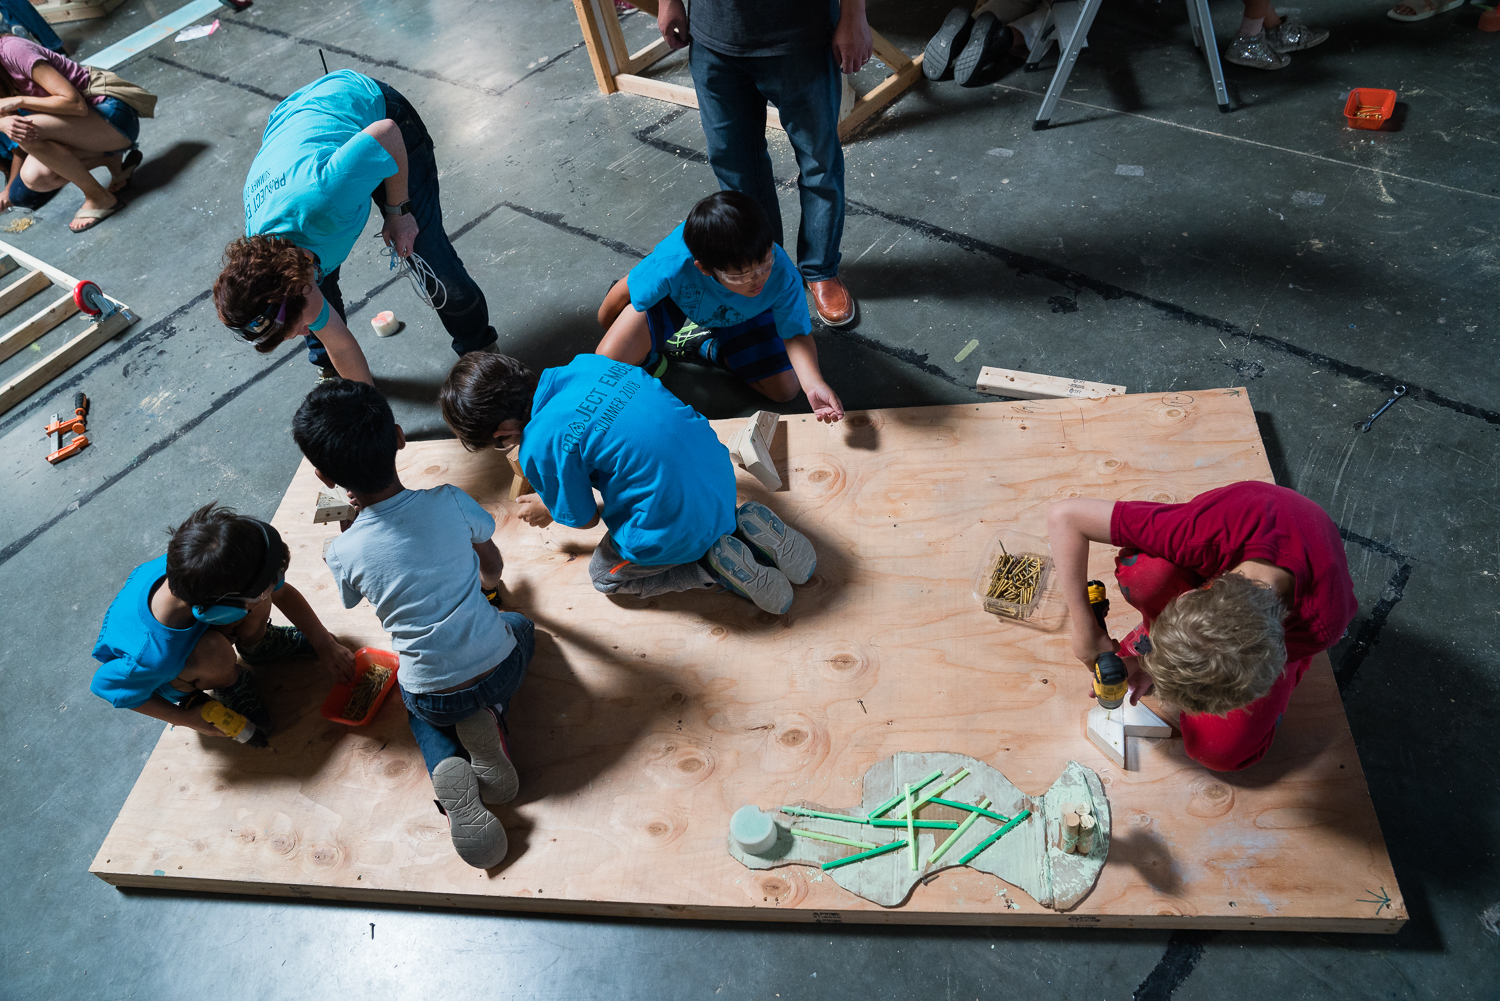 A group of kids kneel and work with power screwdrivers on a large sheet of plywood which lies on the floor.